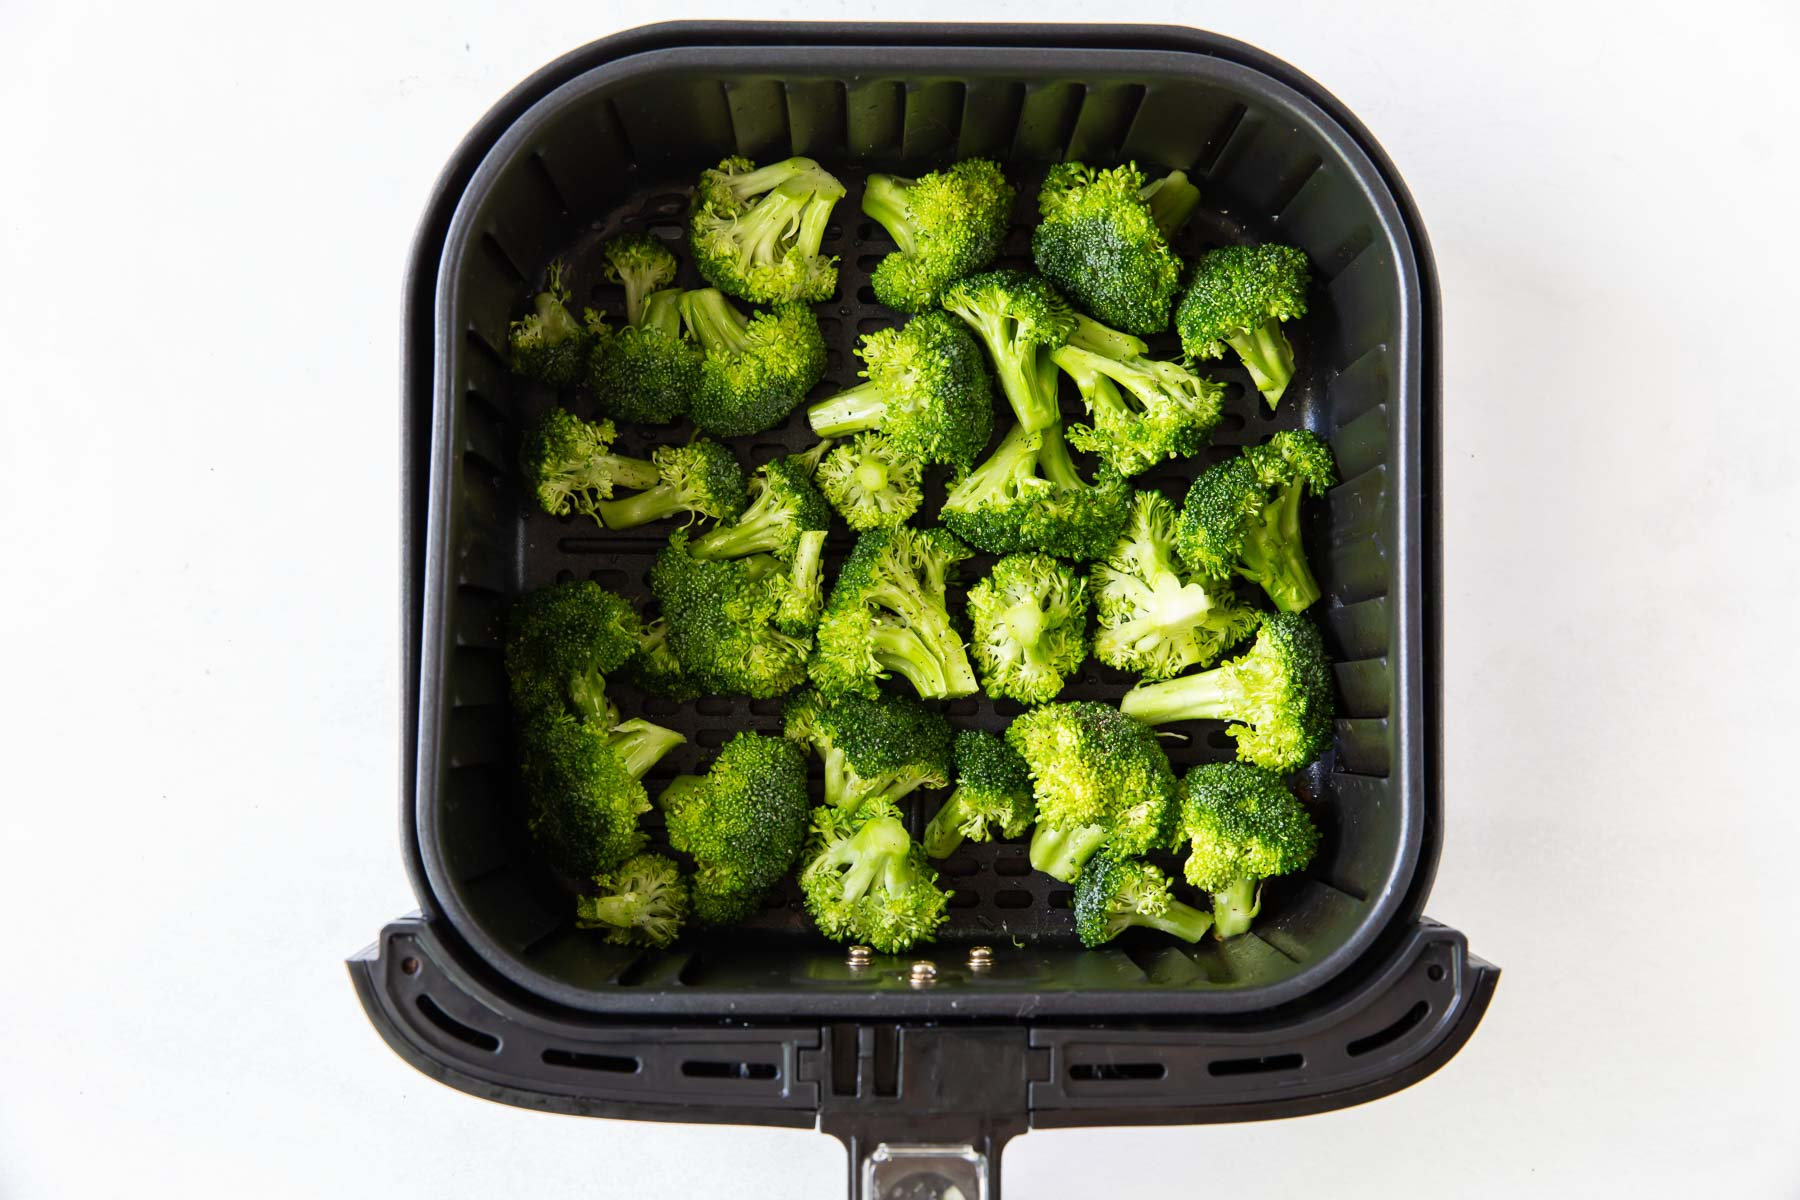 broccoli florets in a single layer in air fryer